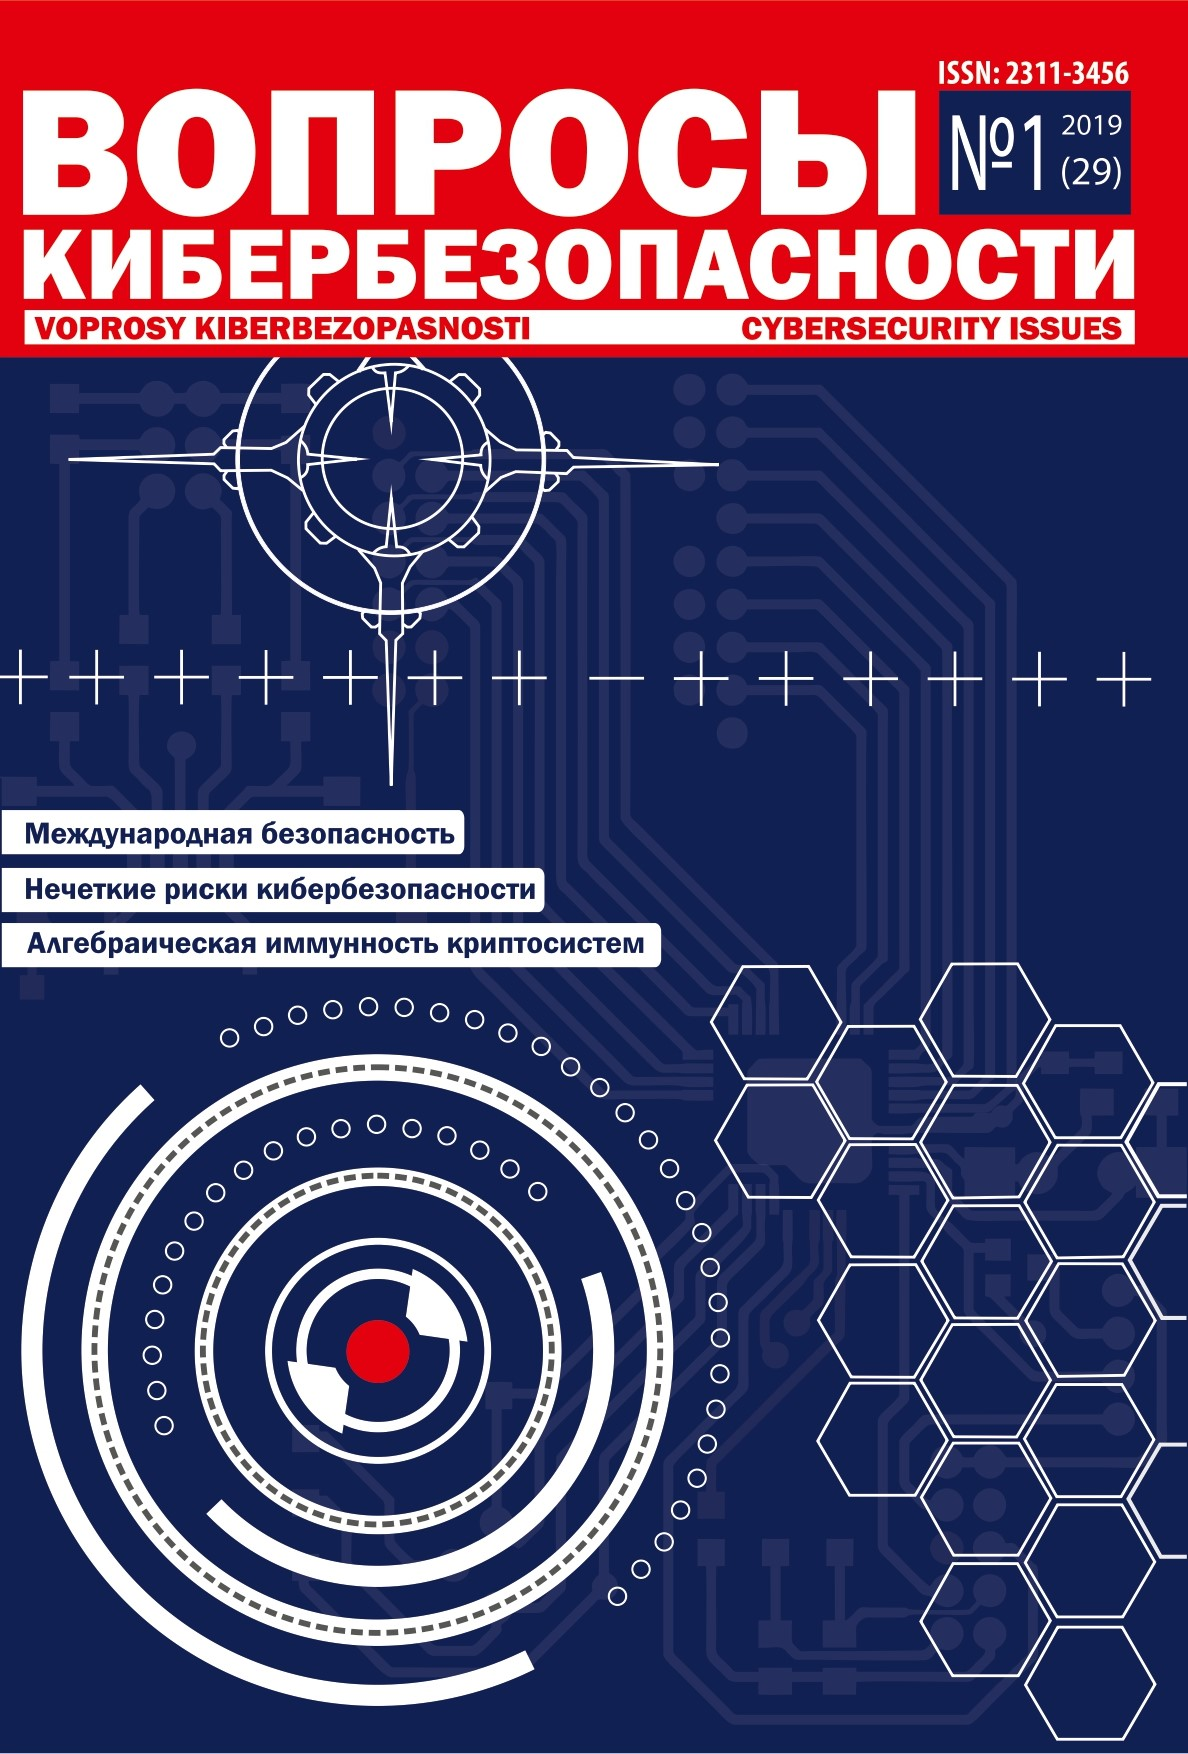 cybersecurity_29